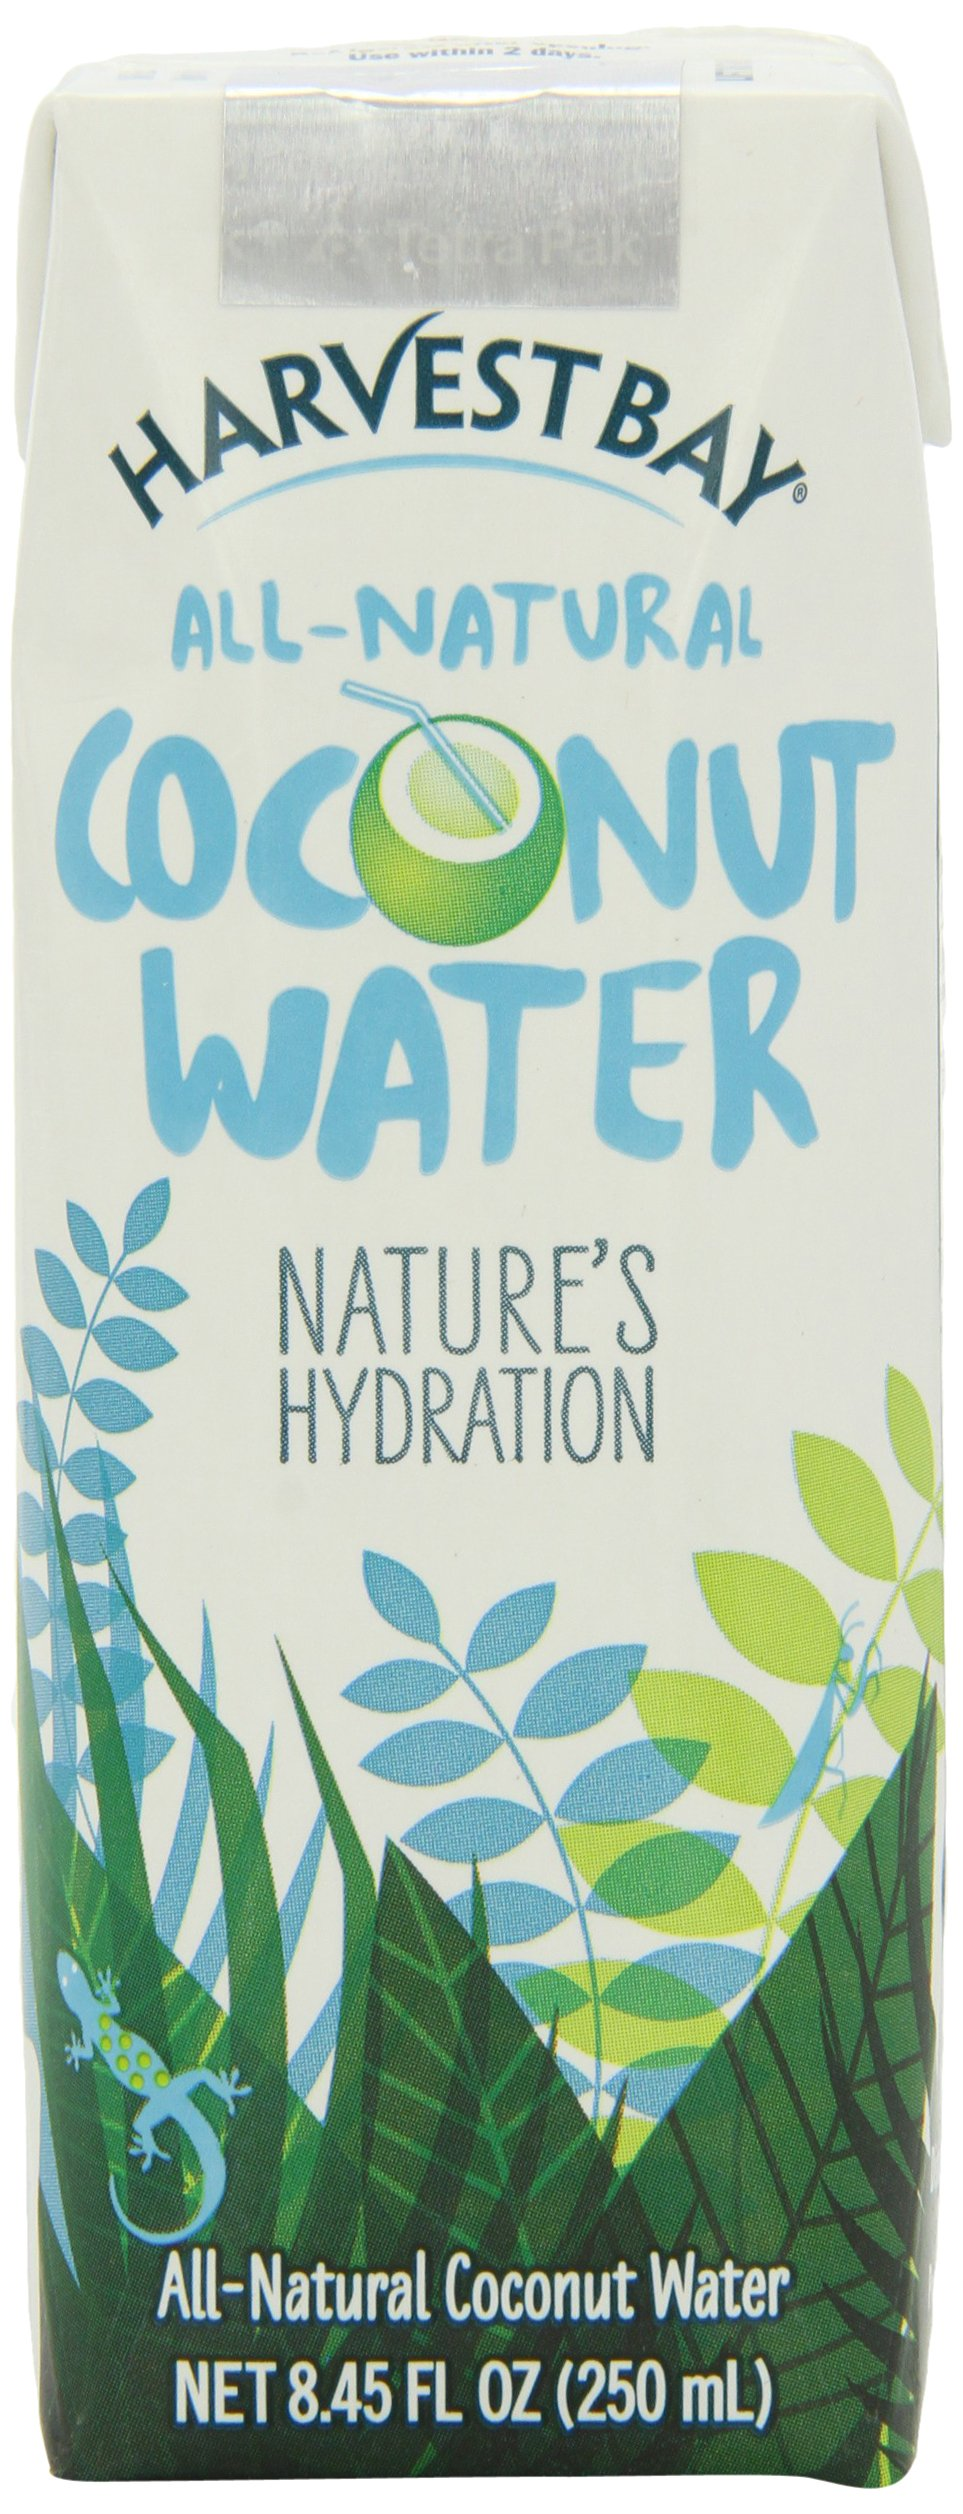 Harvest Bay – All Natural No Added Sugar Coconut Water - 8.45 Ounce (Pack of 12) by Harvest Bay (Image #1)